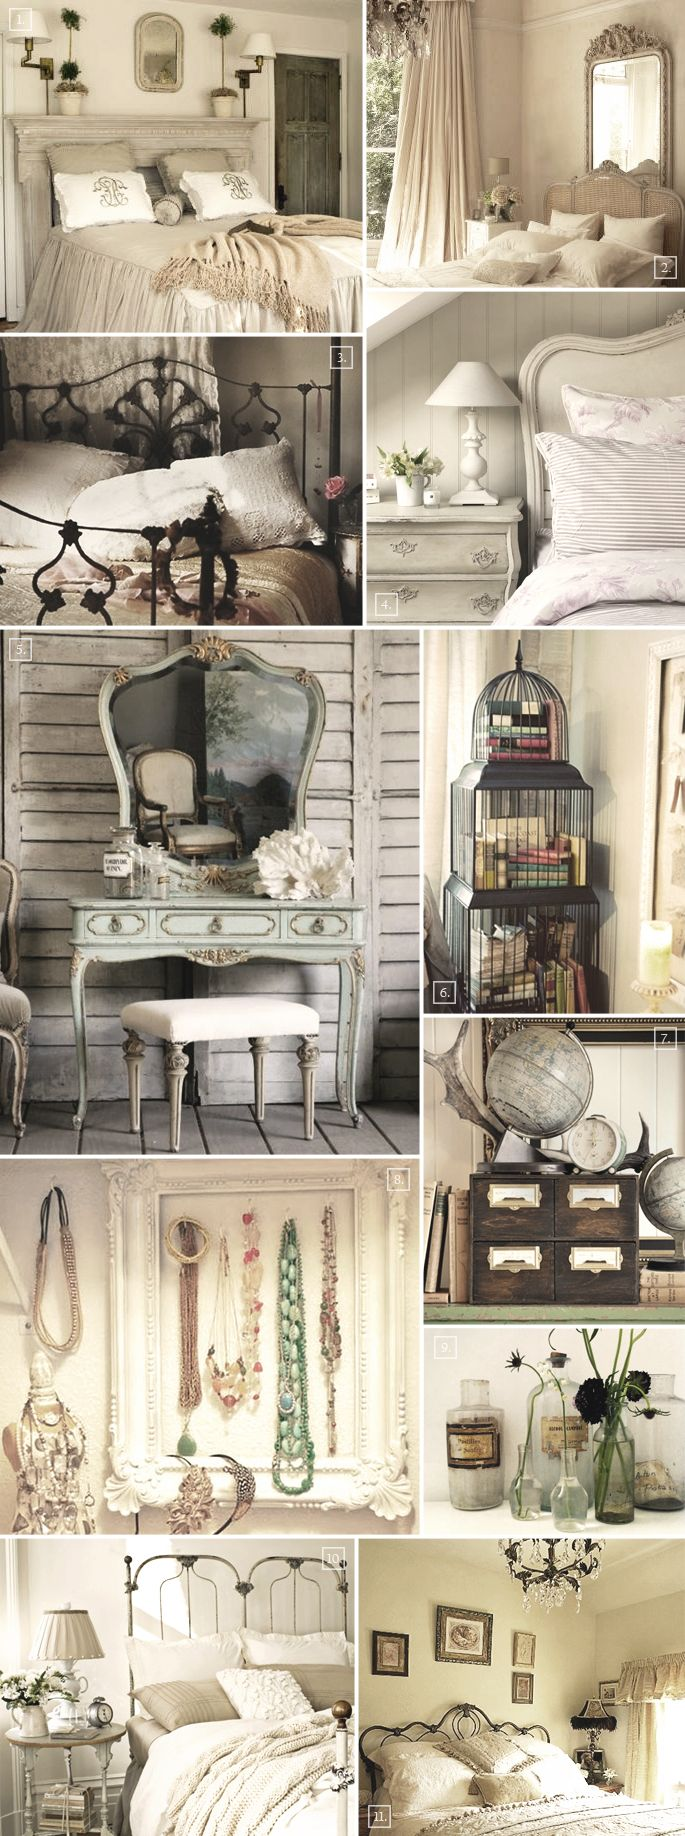 Vintage Bedroom Decor Accessories and Ideas | Home Tree Atlas. Usually I like wood, stone, and rich, rustic designs, but this vintage look is really cool.